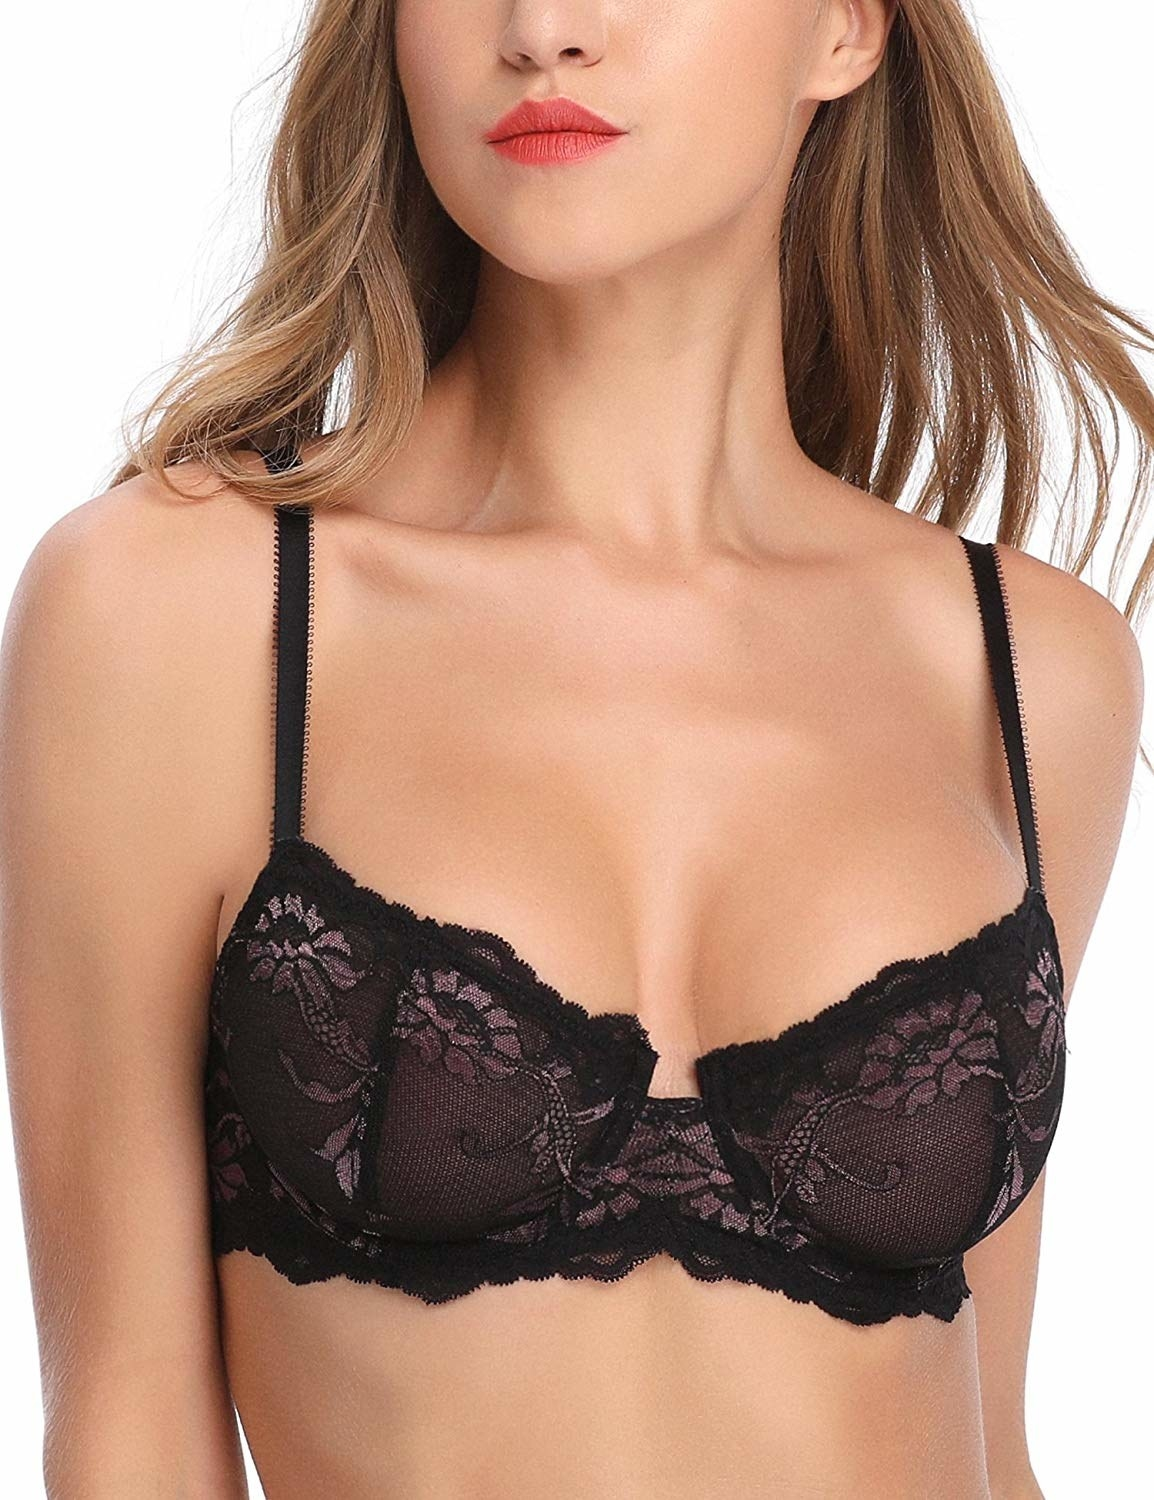 A model wearing the bra in black